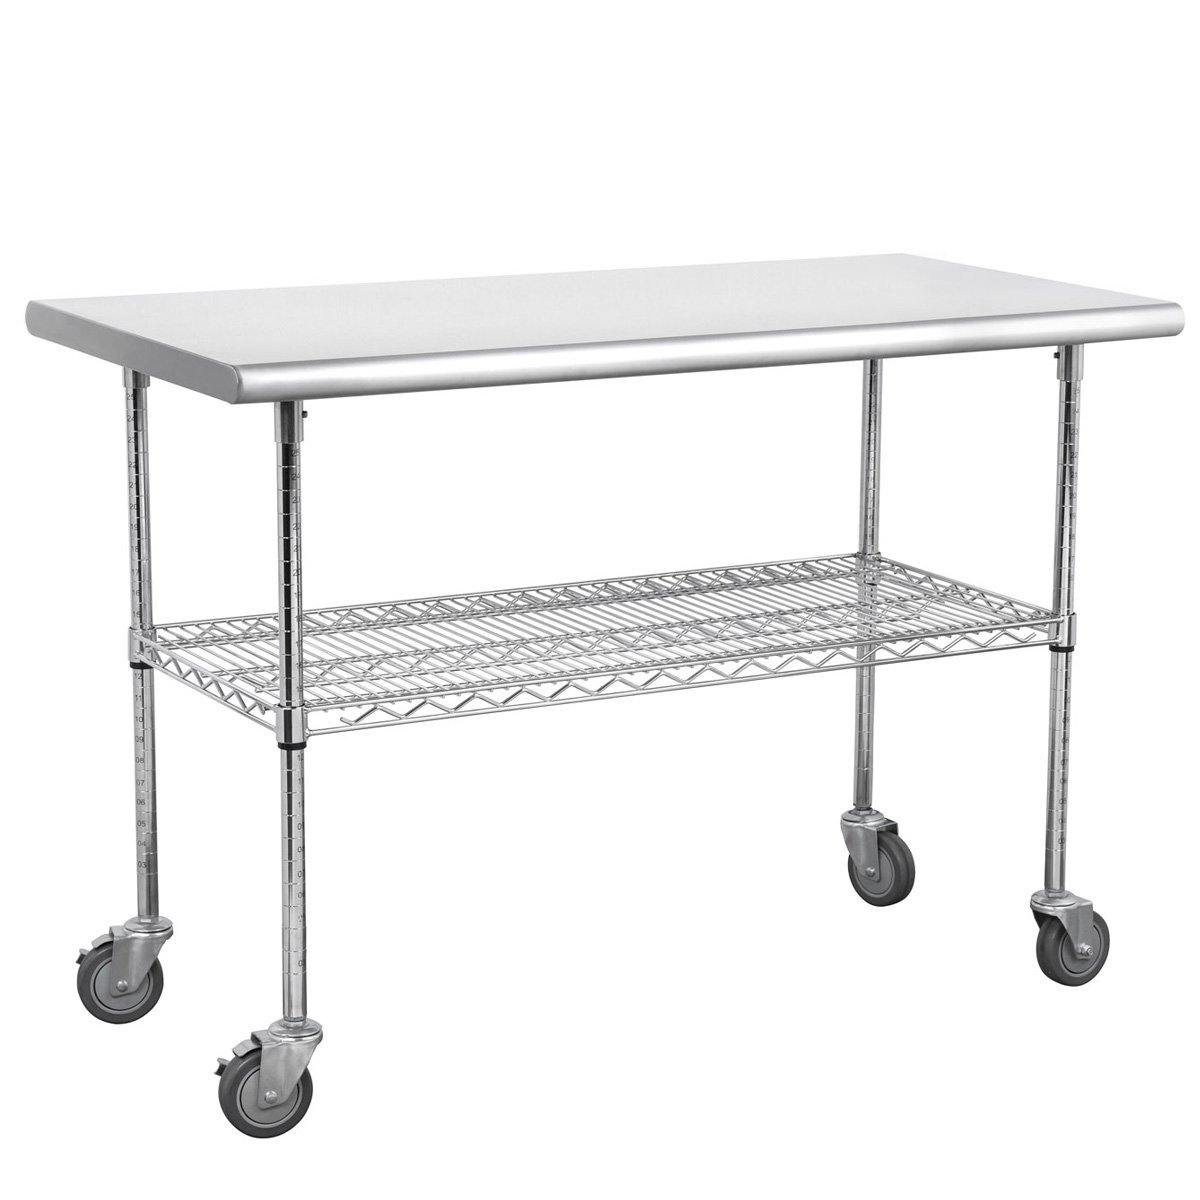 Royal Gourmet Pw W Outdoor Bbq Grill Work Table